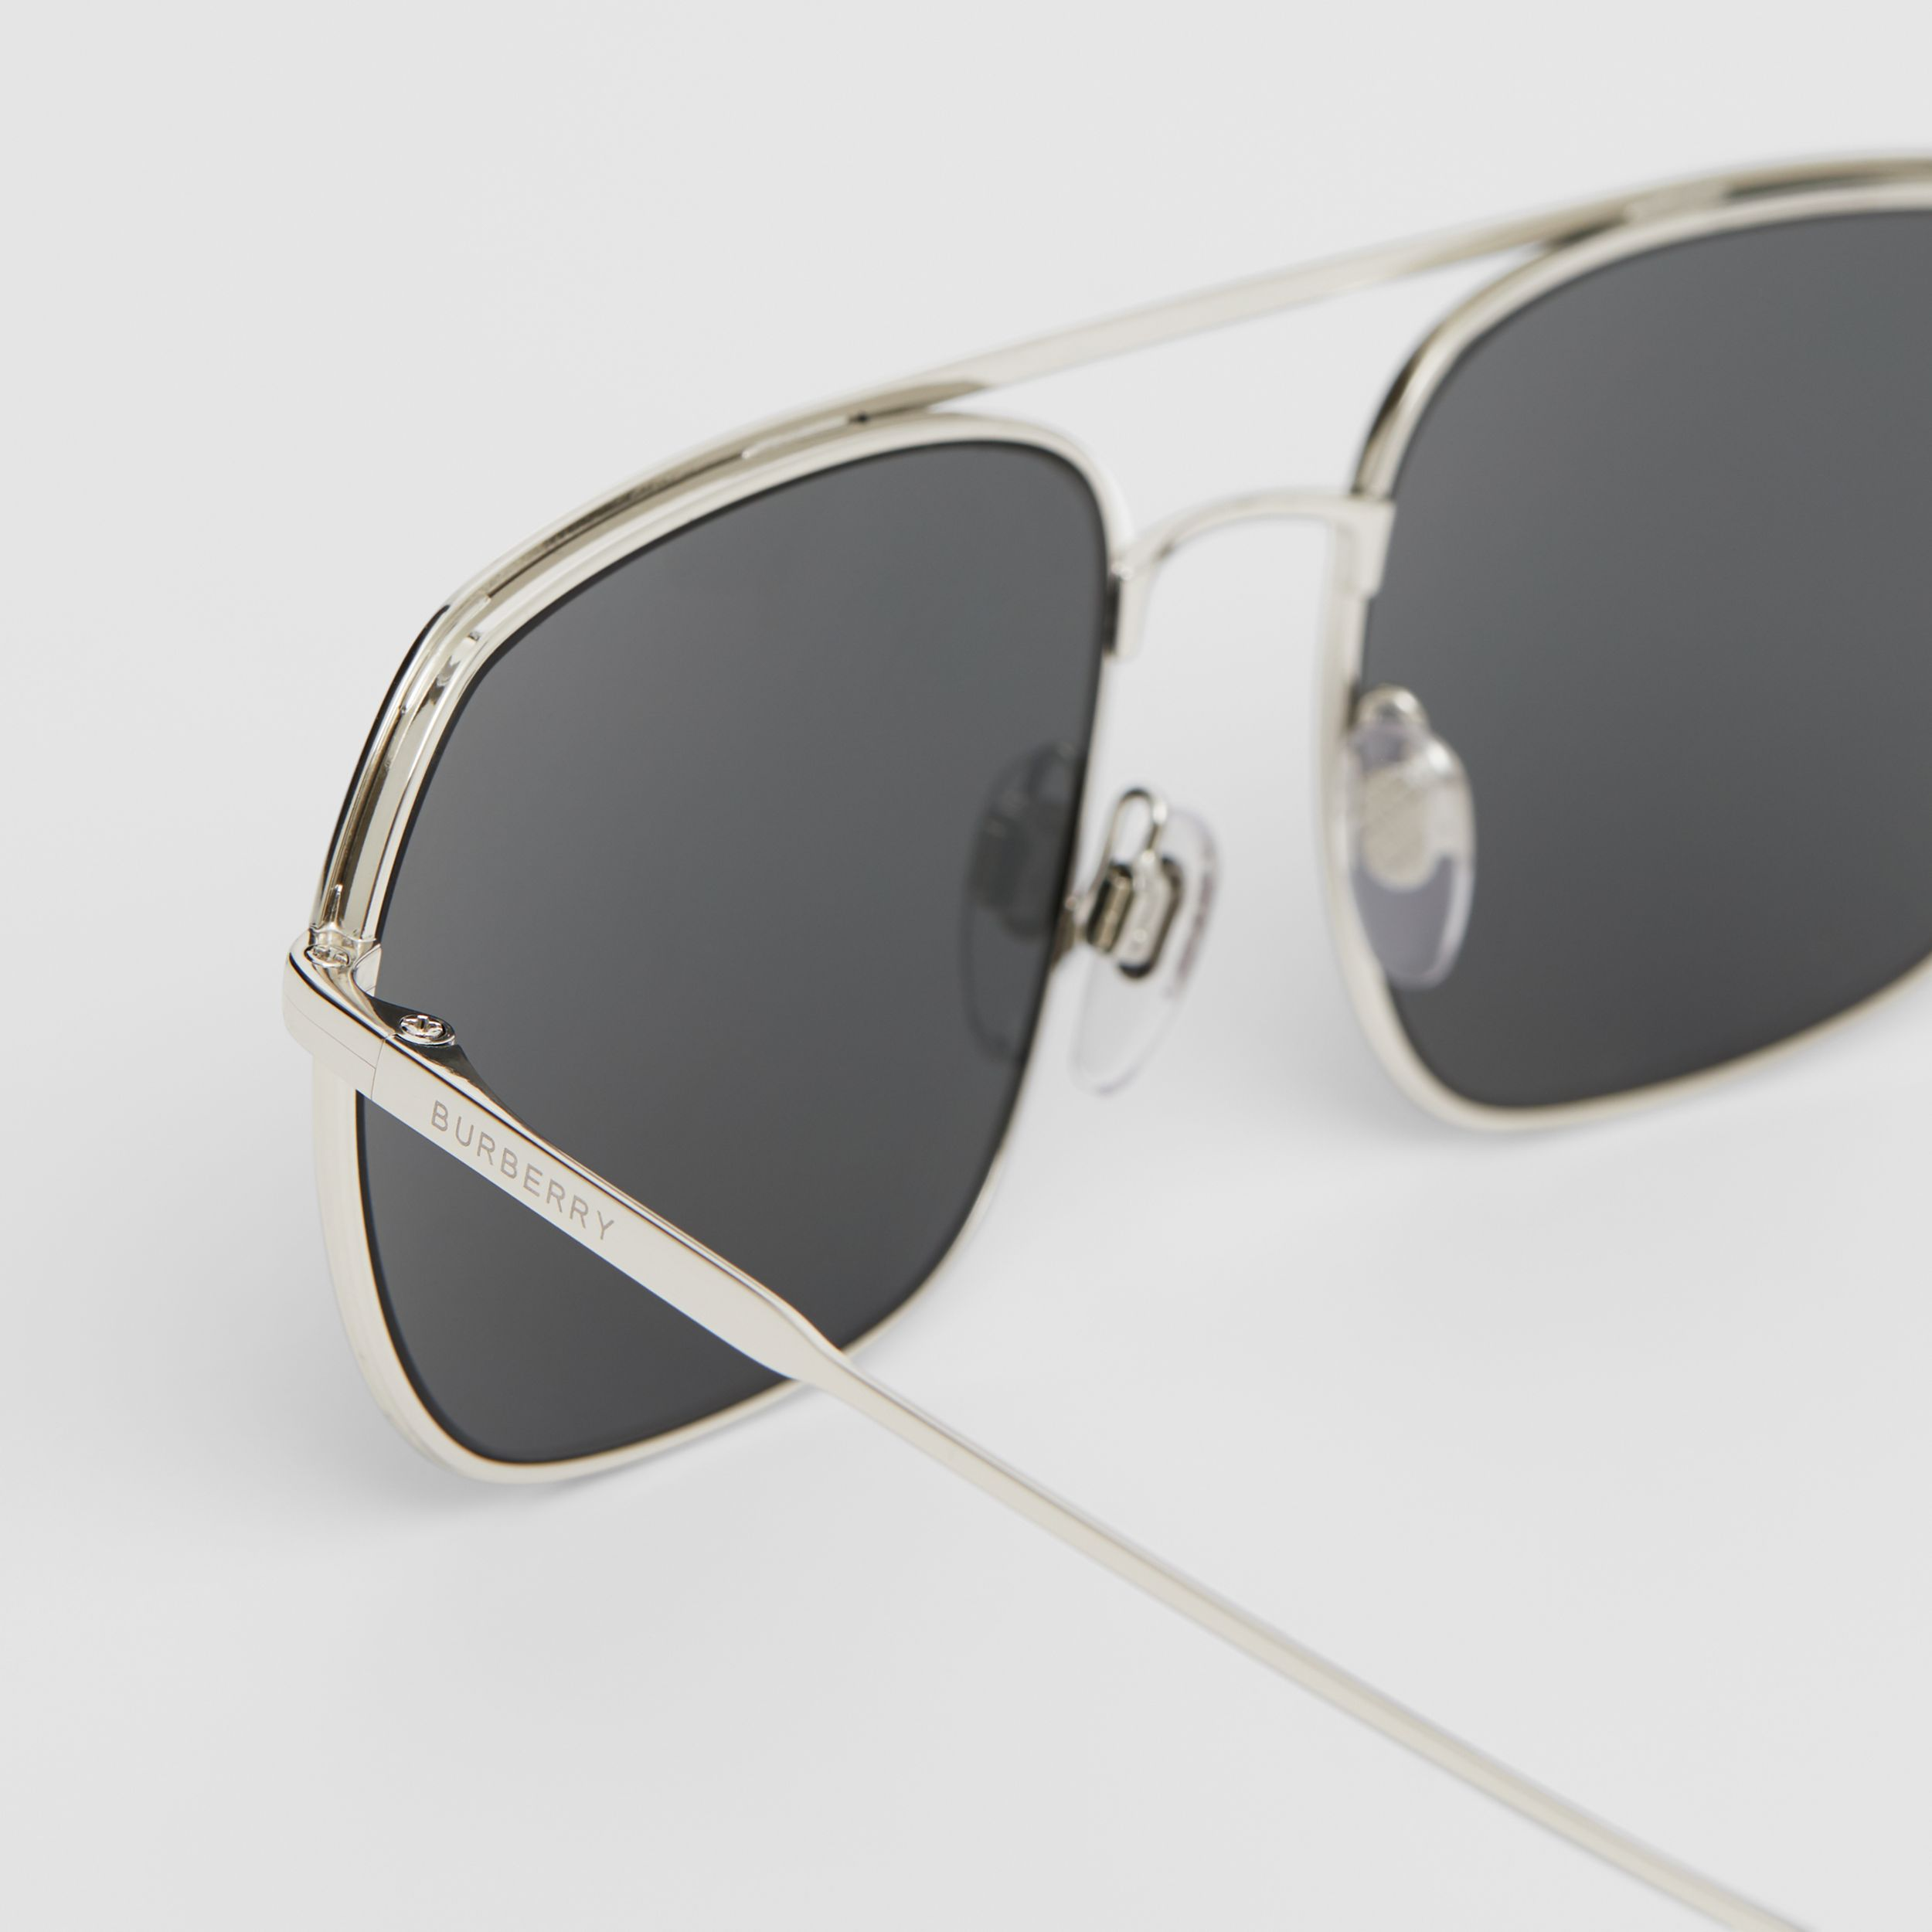 Square Pilot Sunglasses in Silver - Men | Burberry - 2